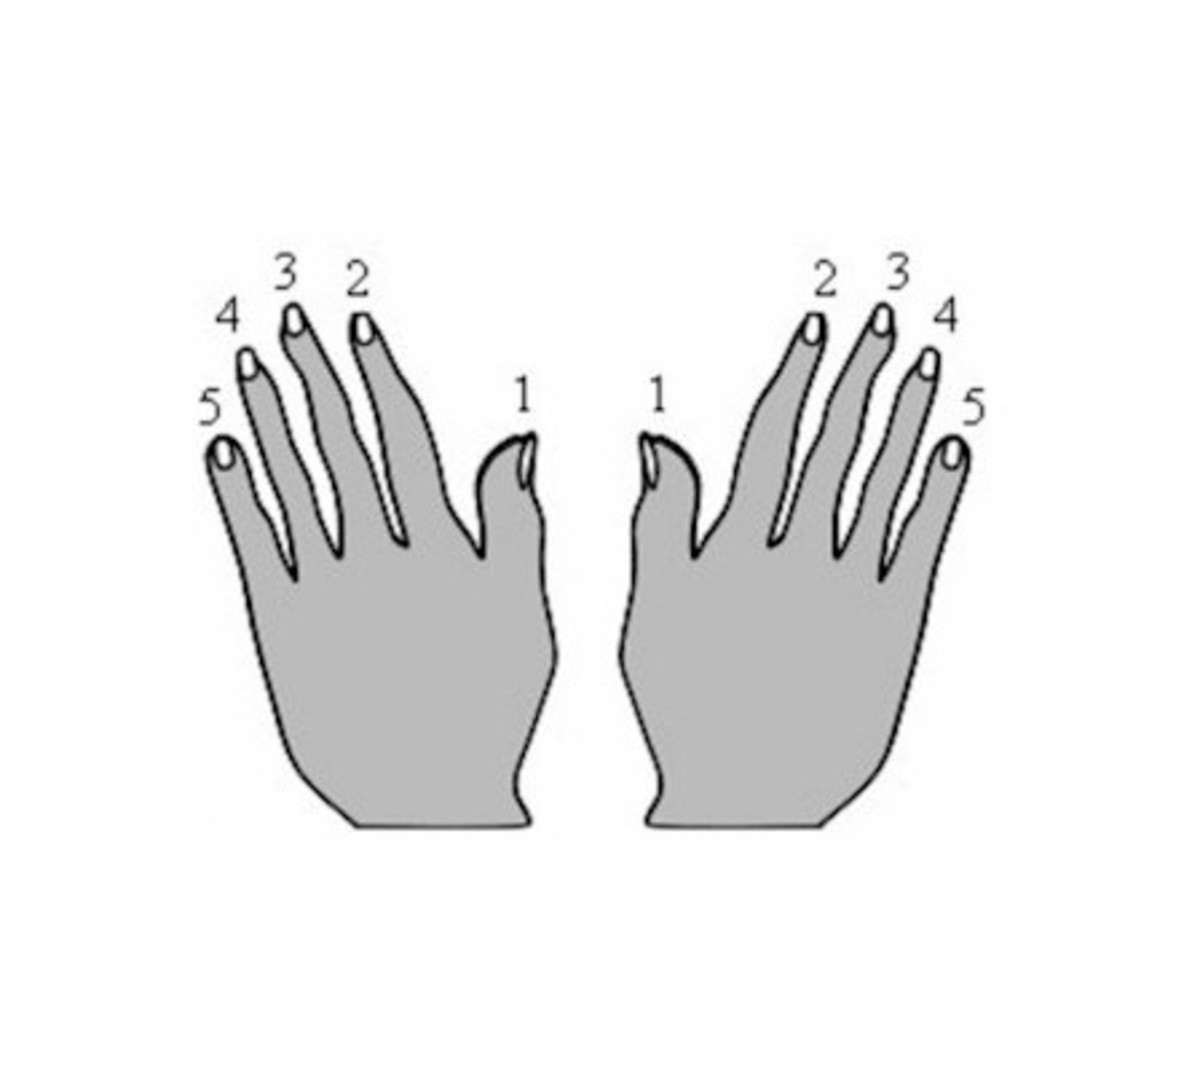 Each of your fingers corresponds to a number you can use to play the notes on your piano keyboard